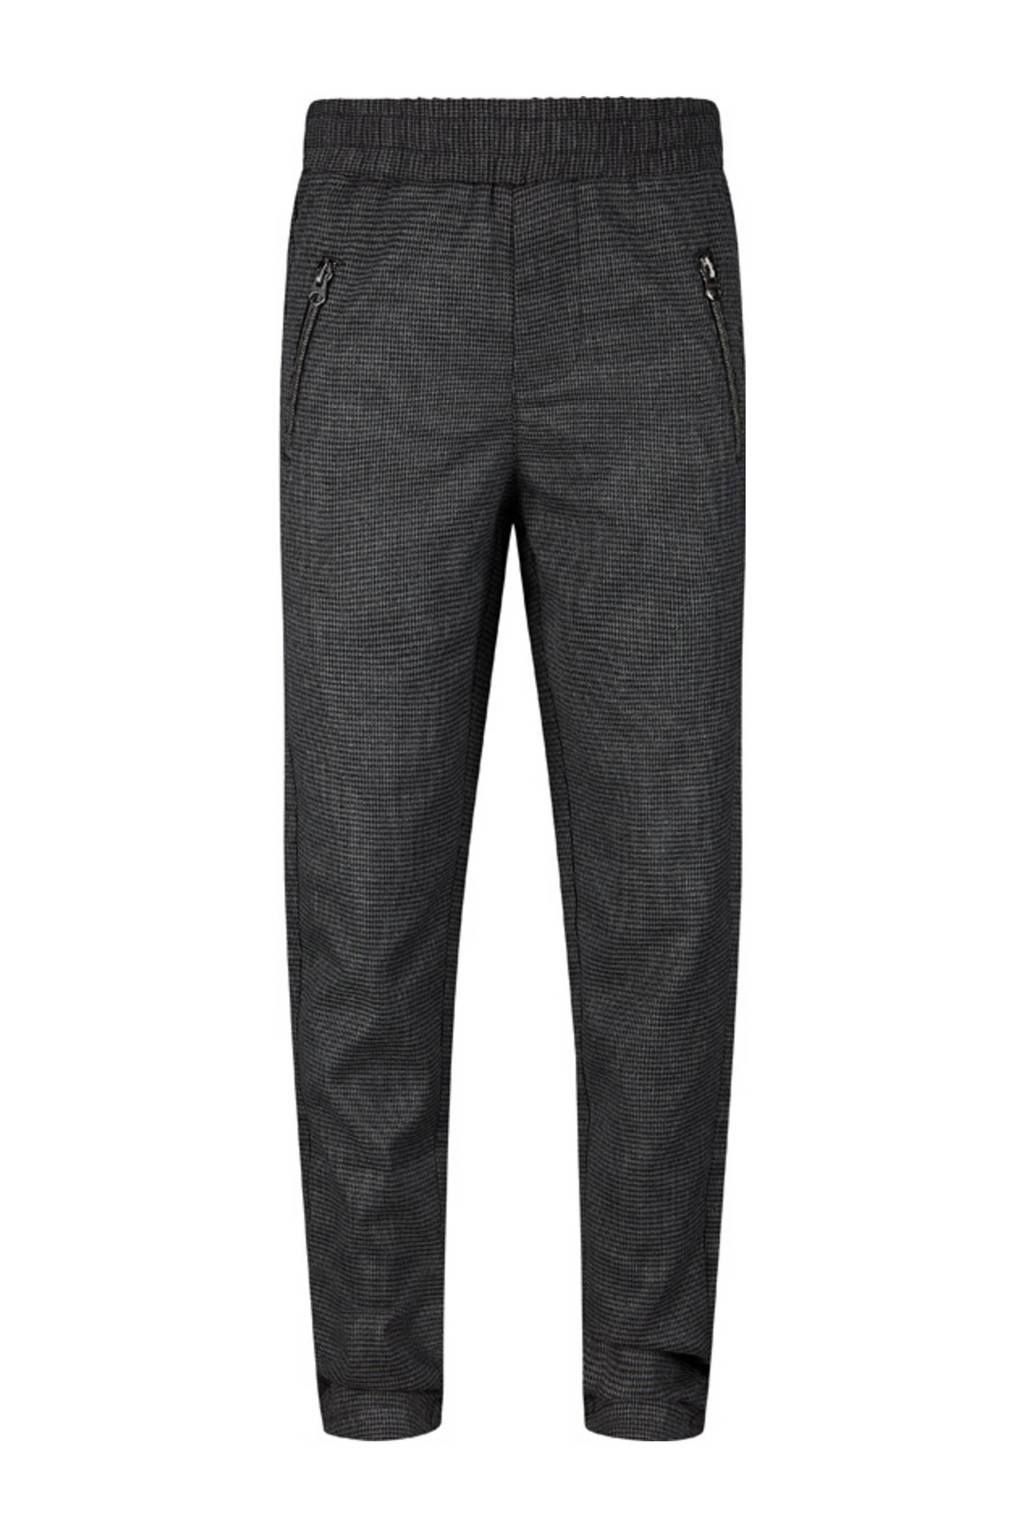 Retour Denim slim fit joggingbroek Arthur zwart, Zwart